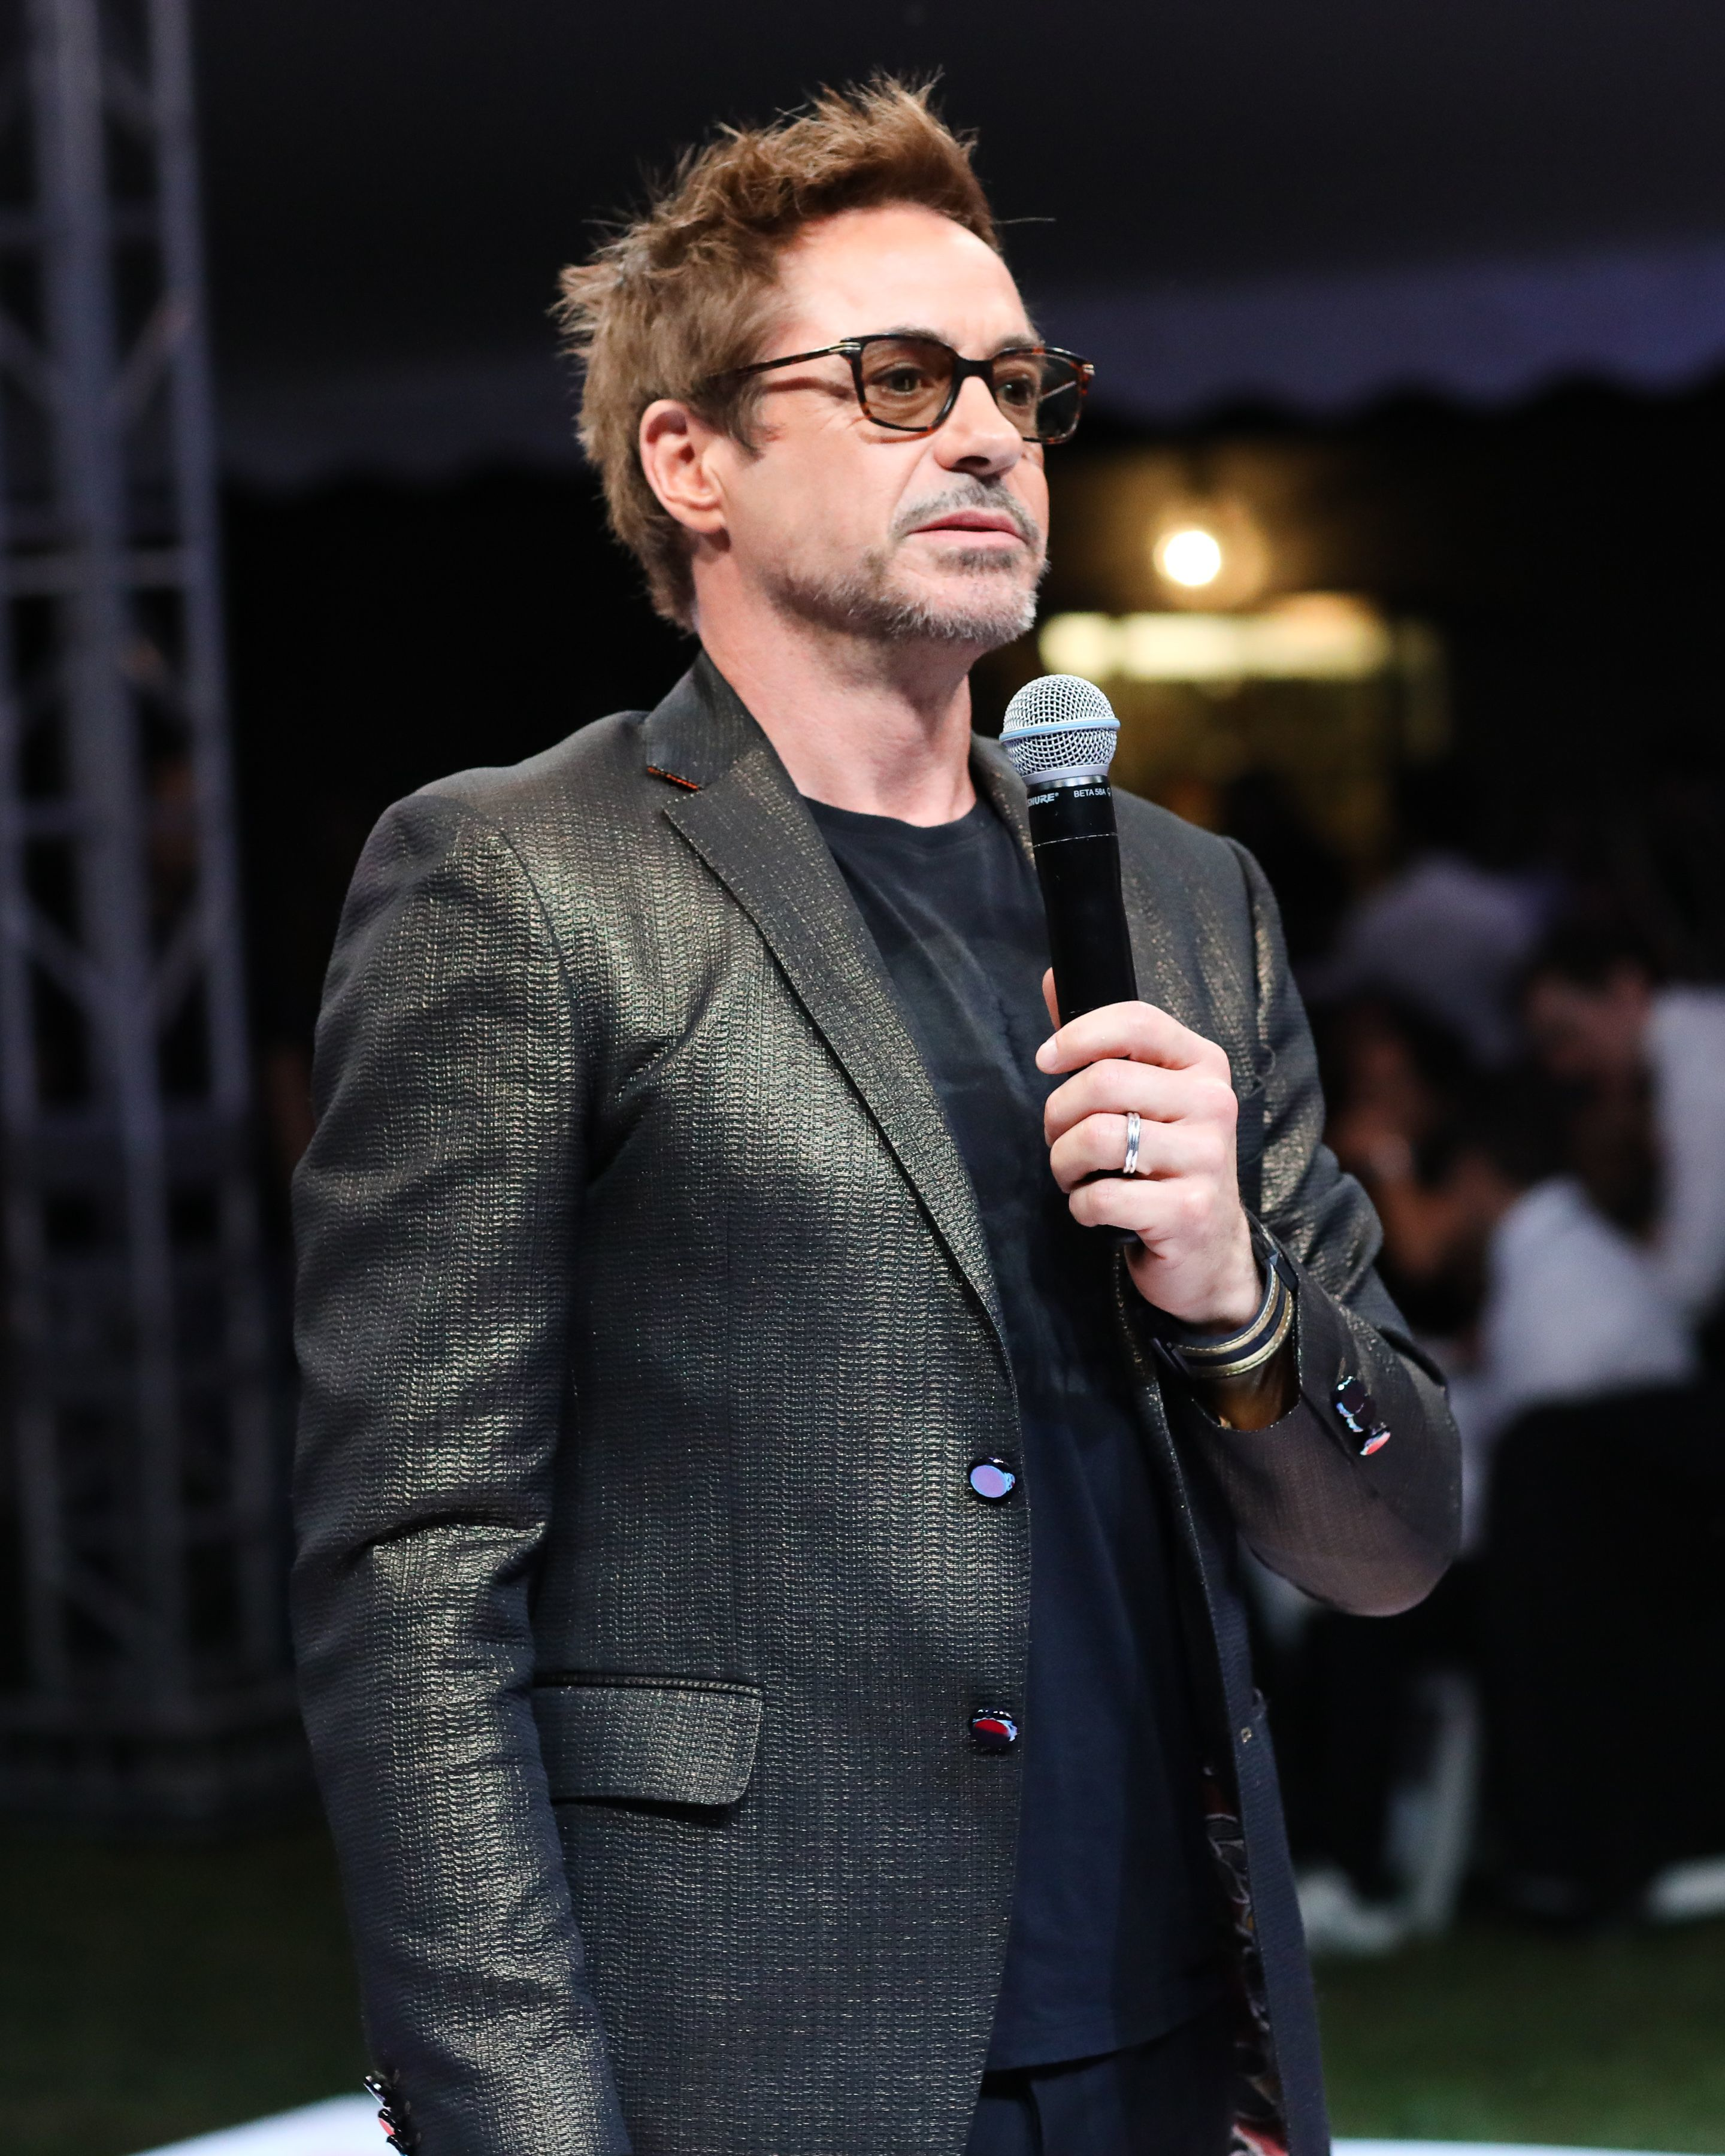 Robert Downey Jr. attends the 24th Annual Watermill Centre Summer Fly Into The Sun Benefit and Auction in New York City on July 29, 2017.